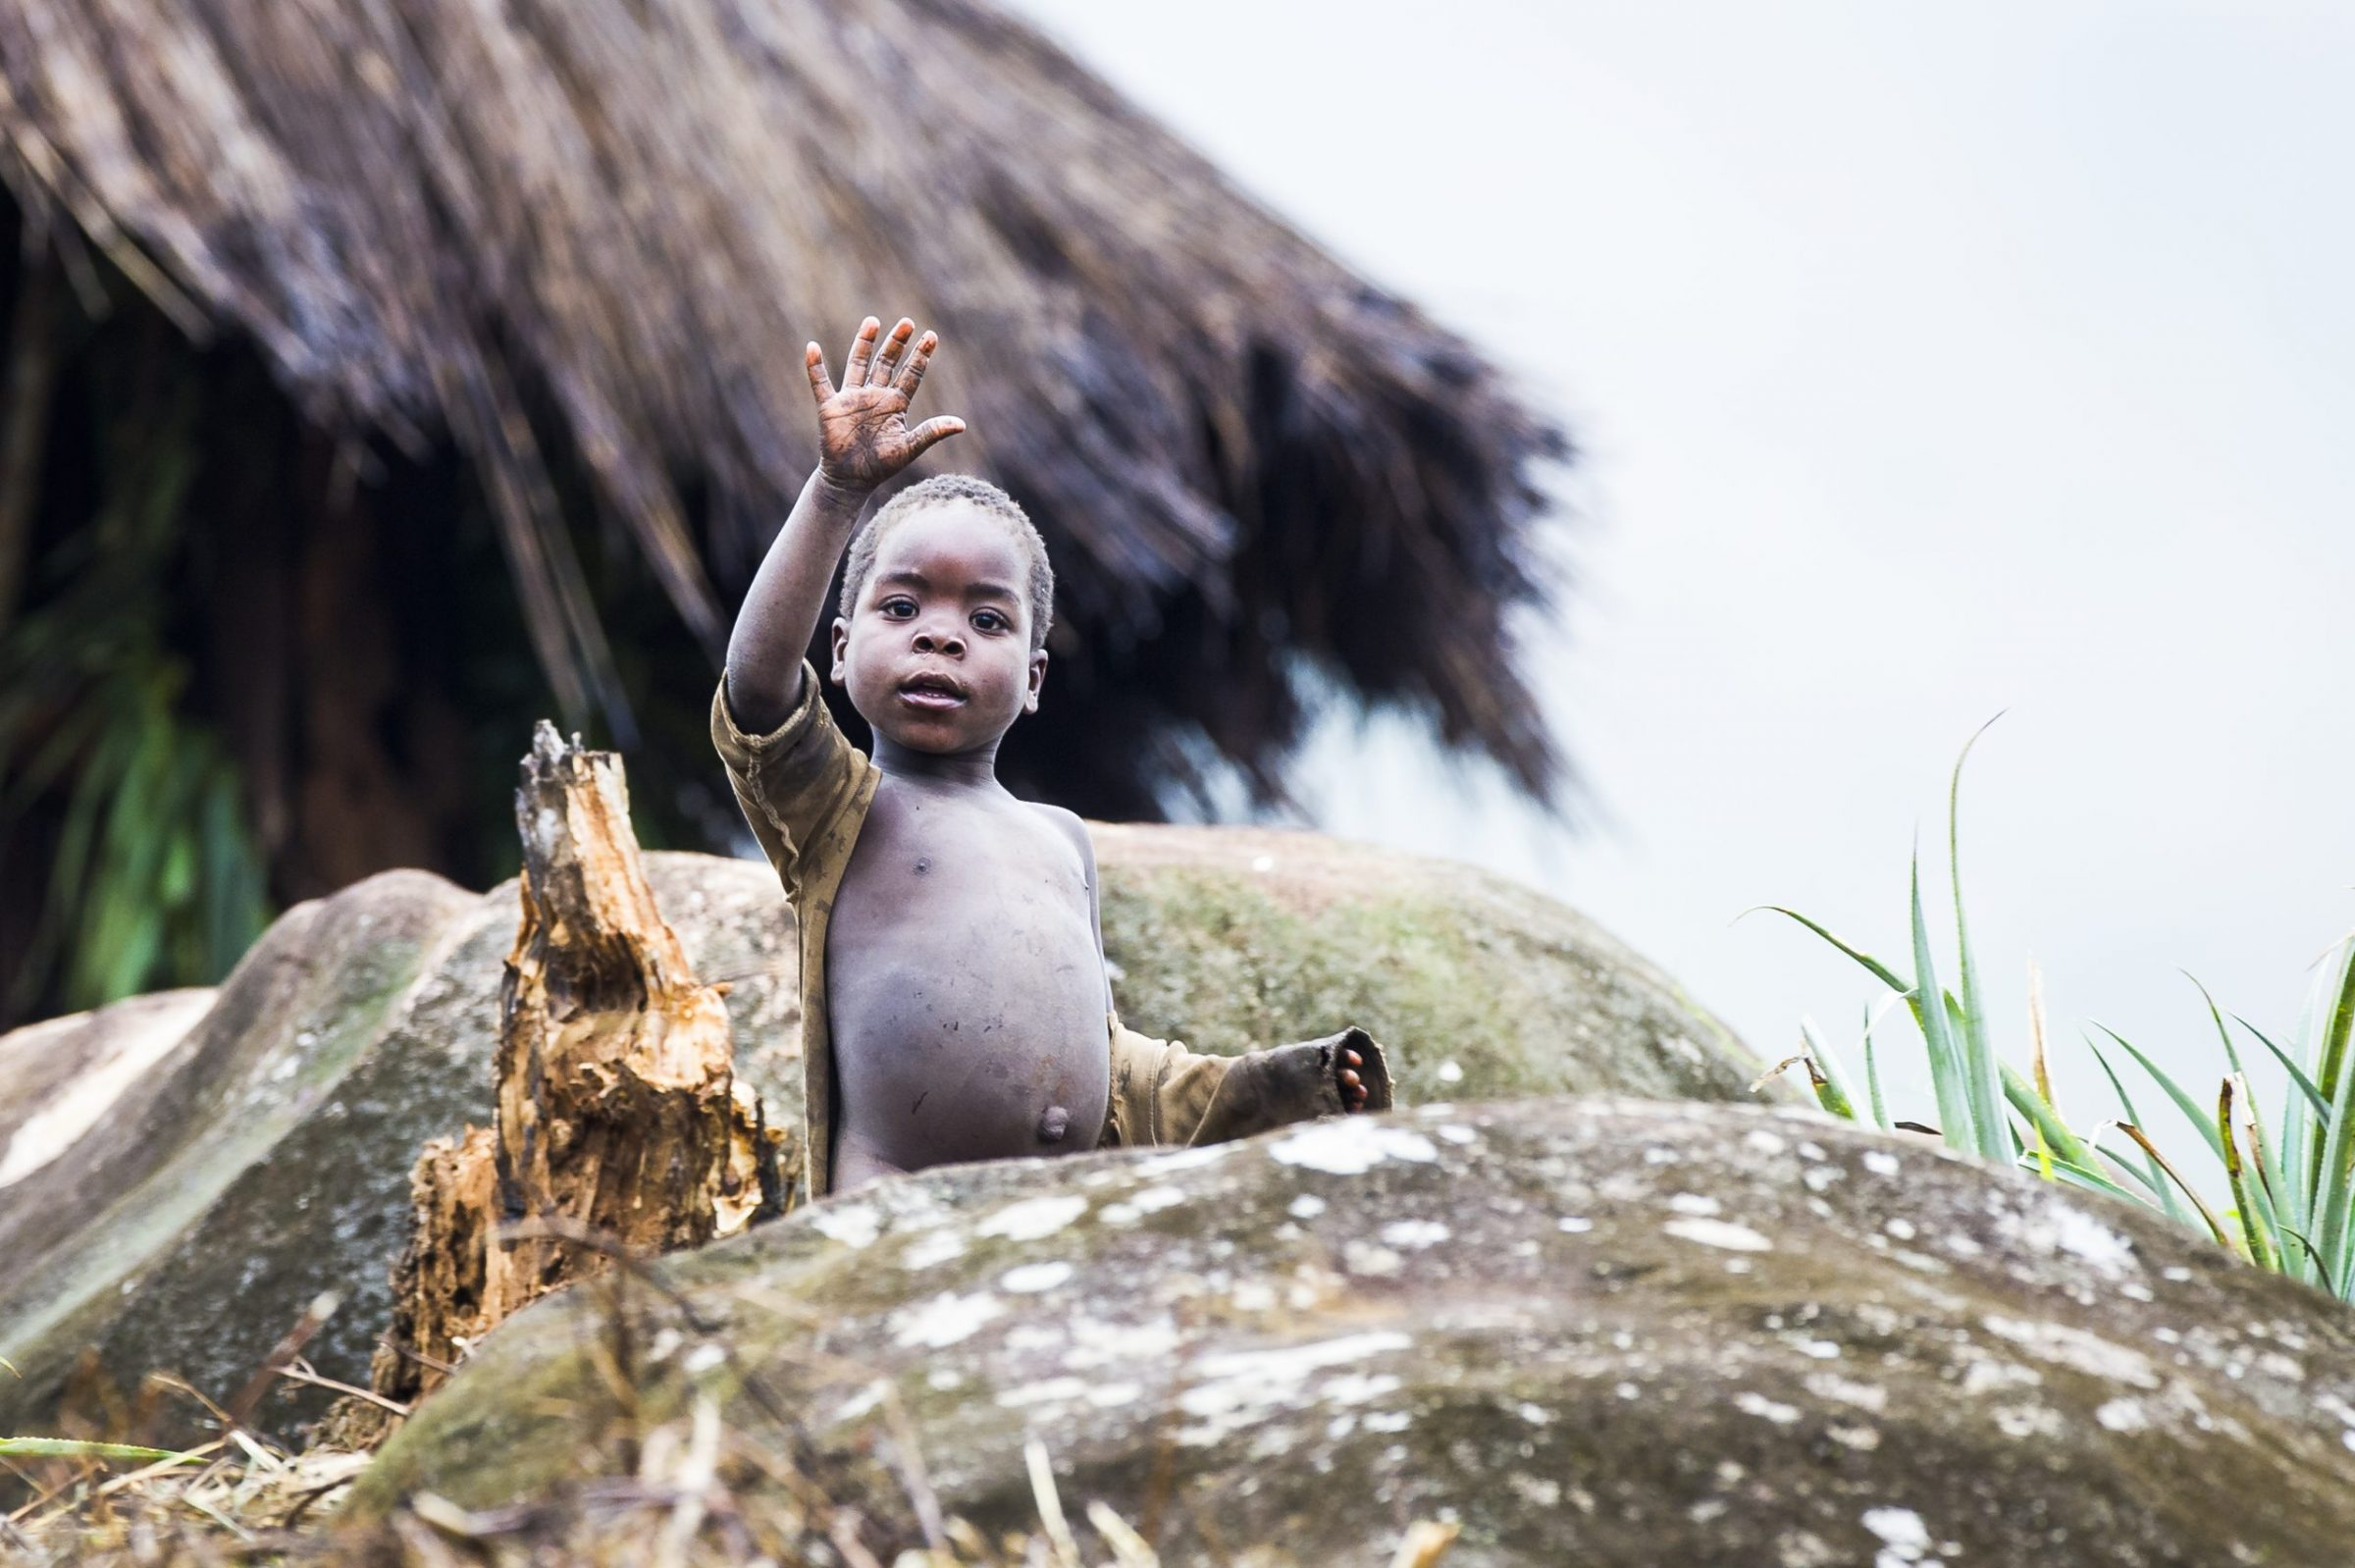 A young Mozambican child waves from outside his home.